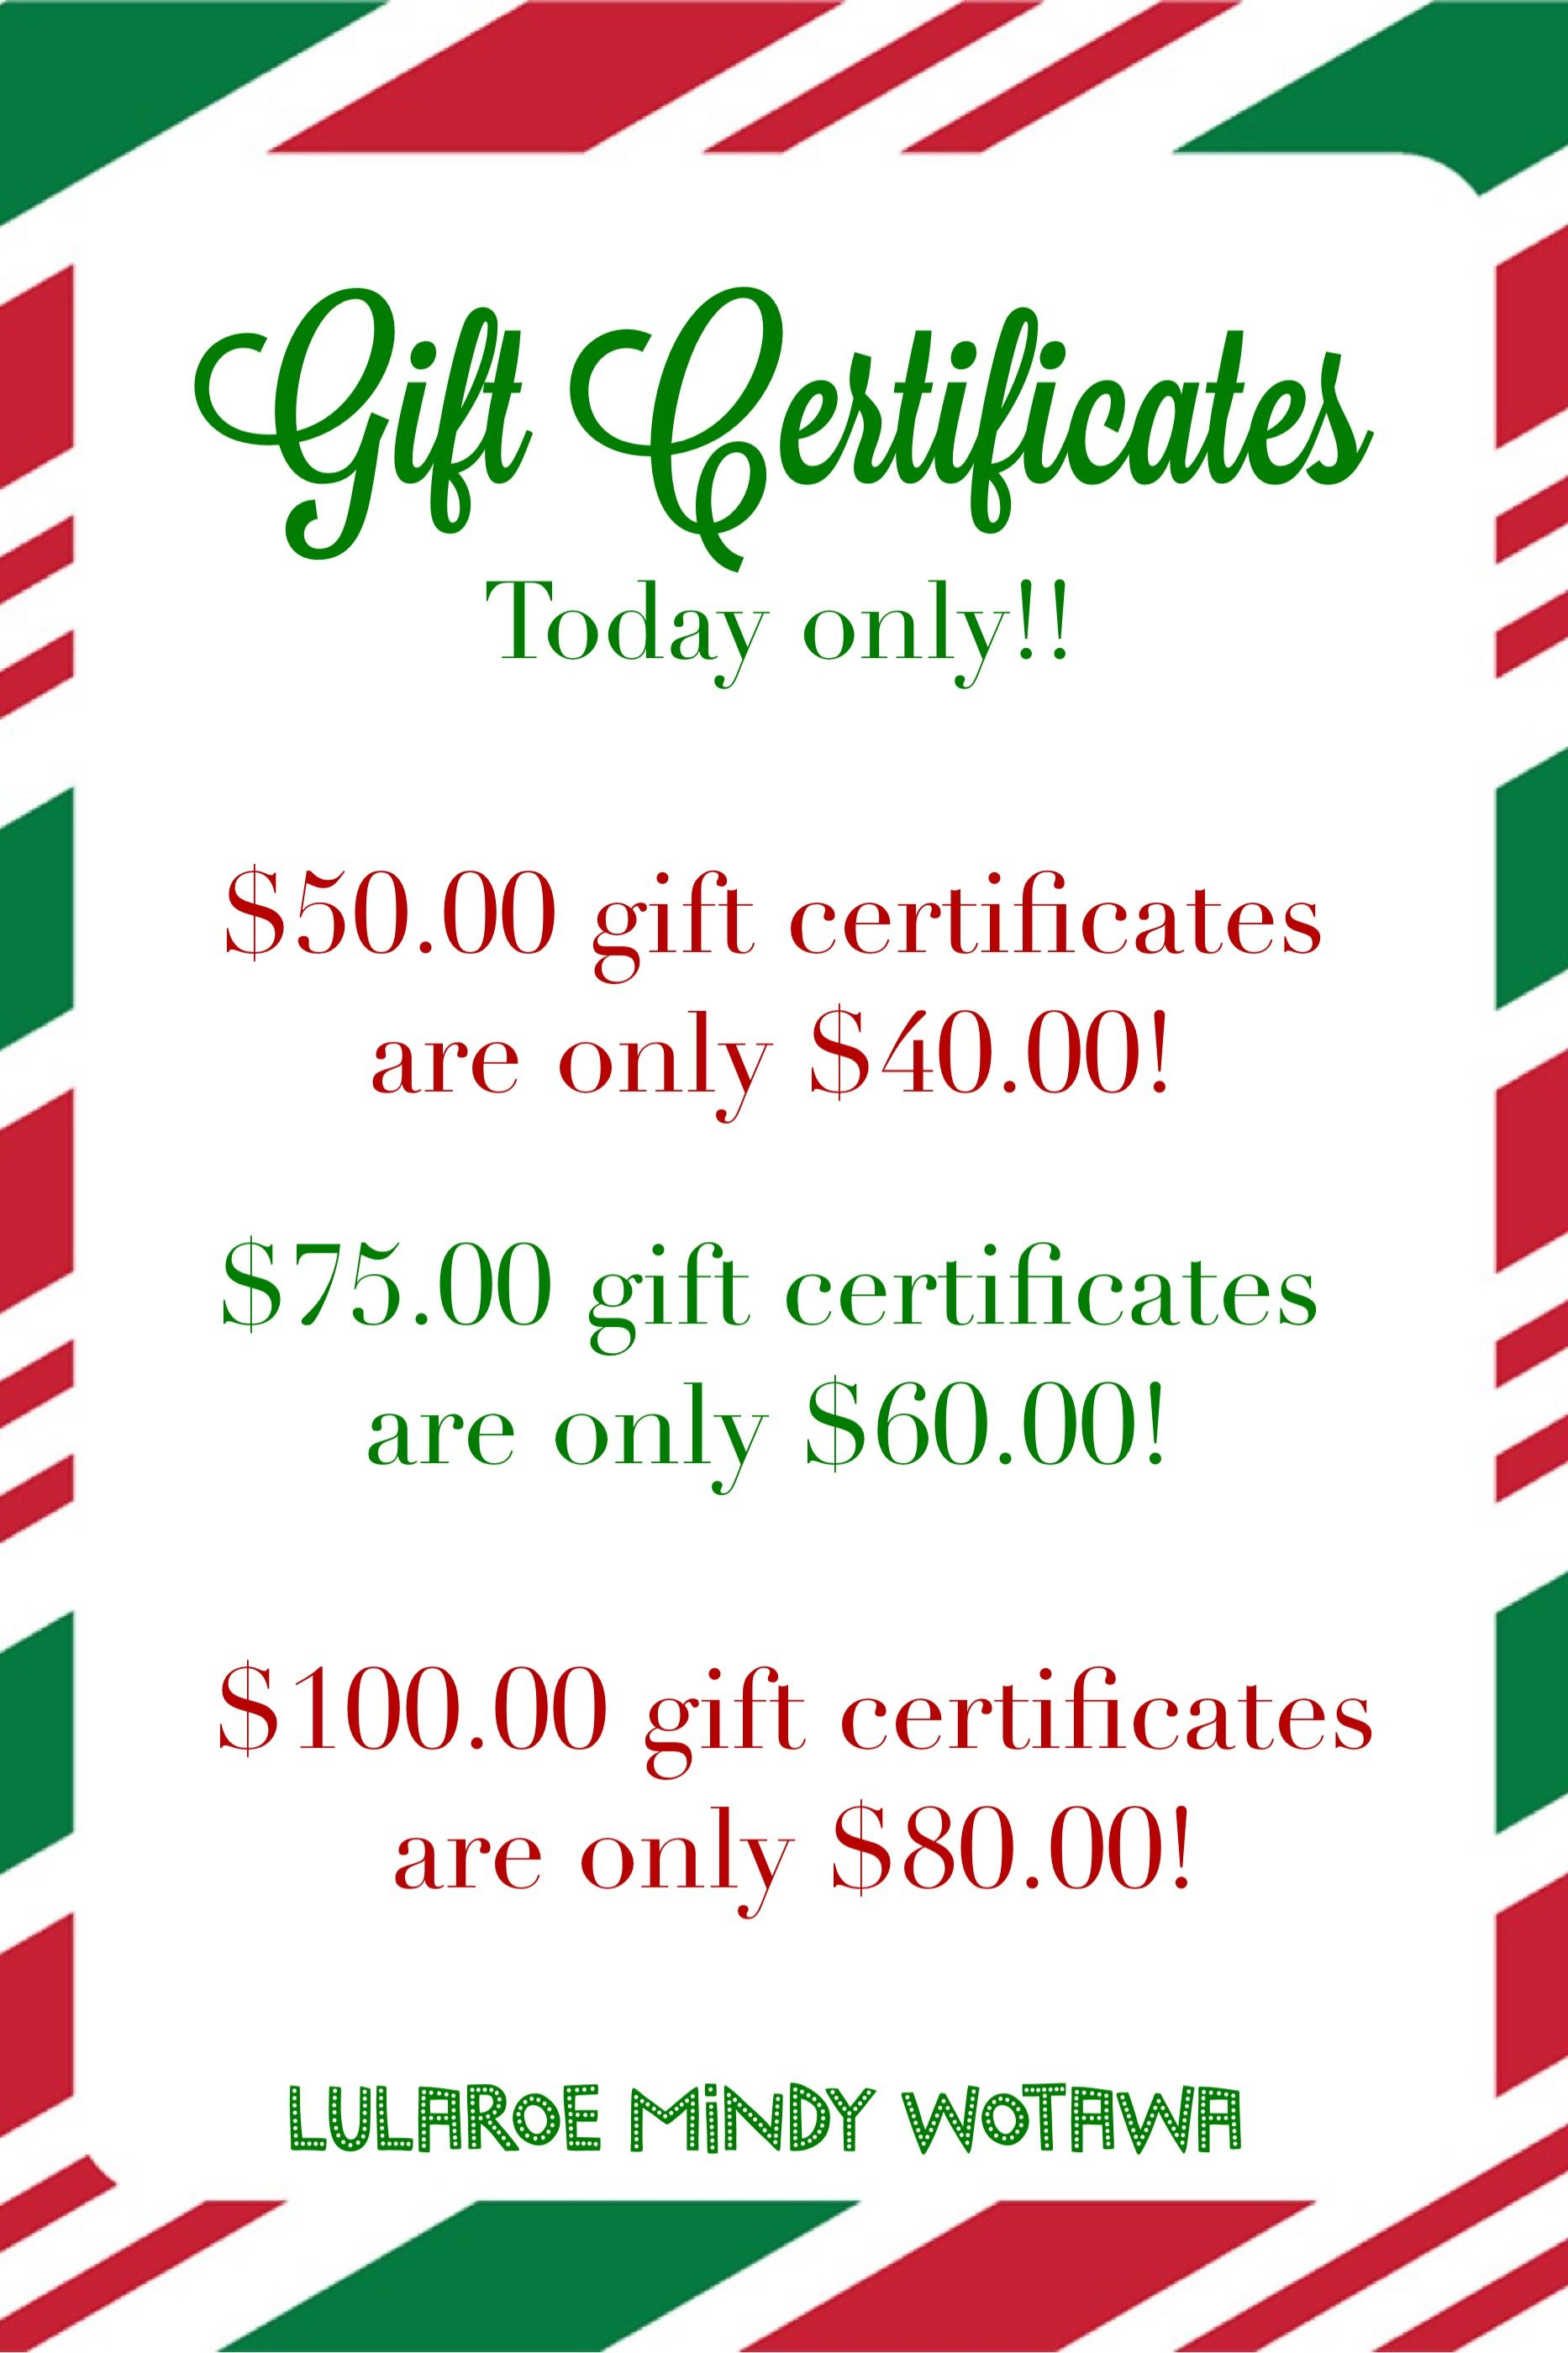 Small business saturday only gift certificate specials lularoe small business saturday only gift certificate specials colourmoves Choice Image